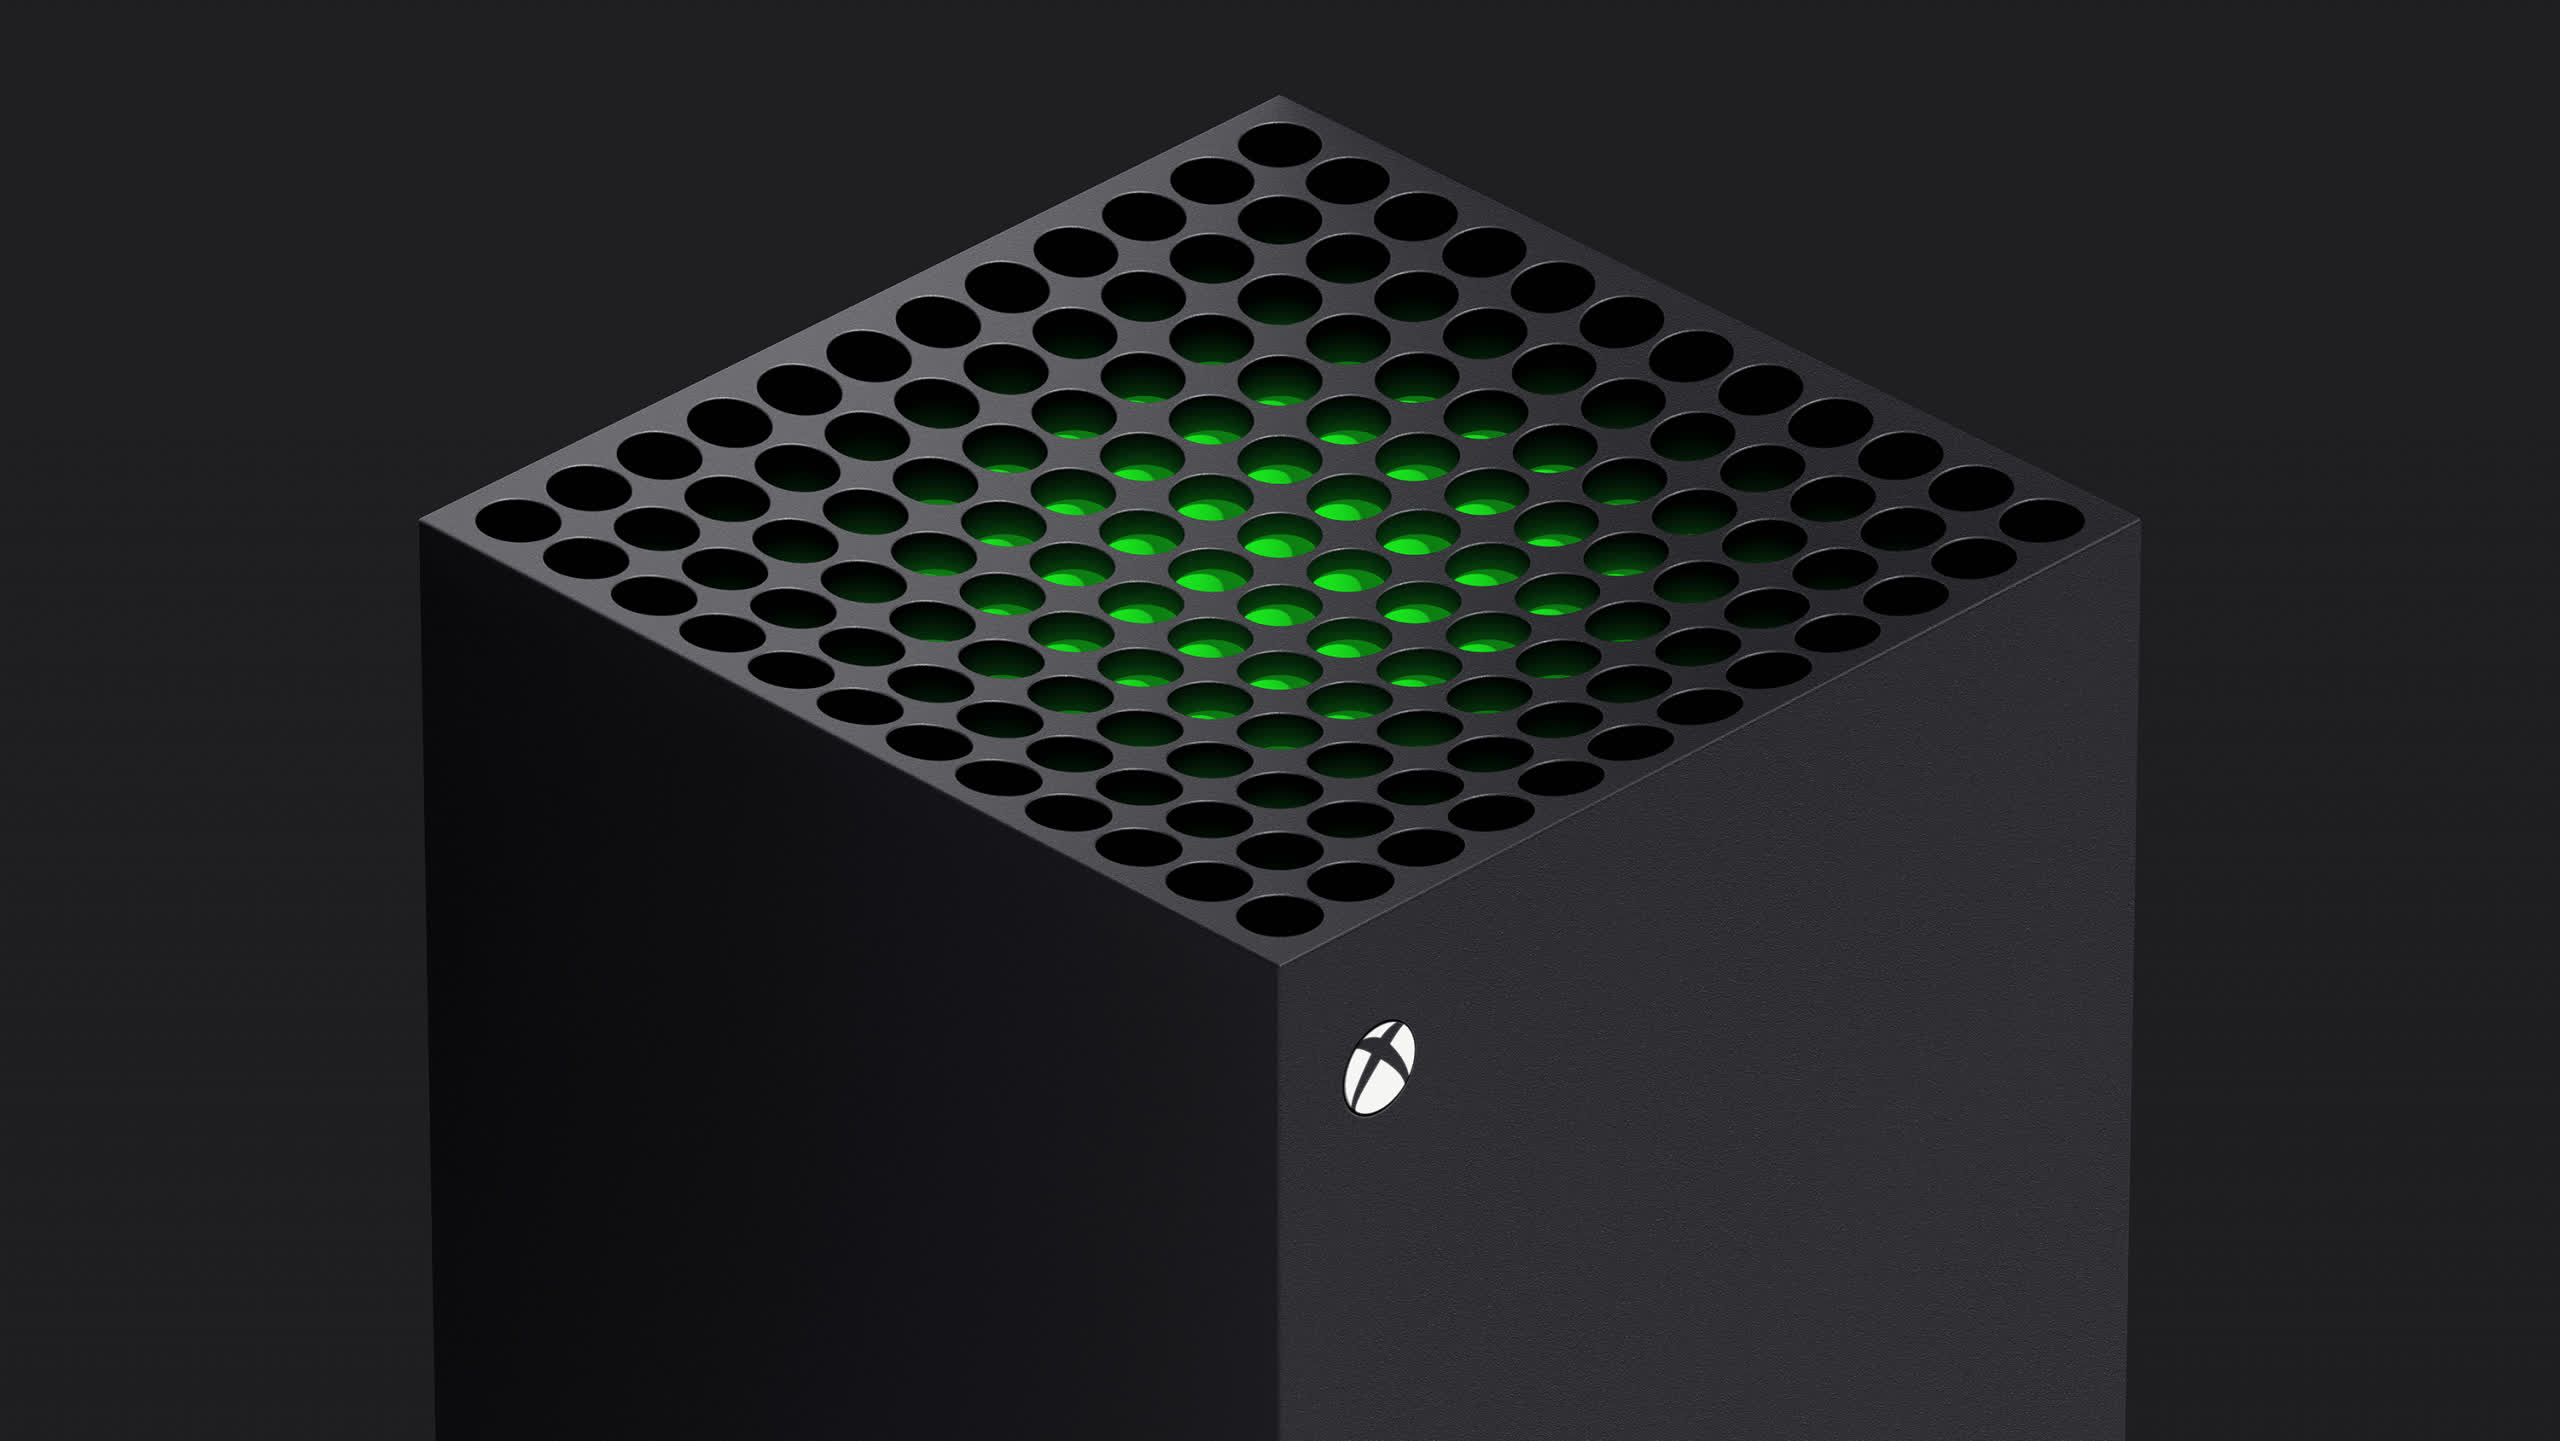 Xbox Series X pre-orders might be delayed, says Amazon